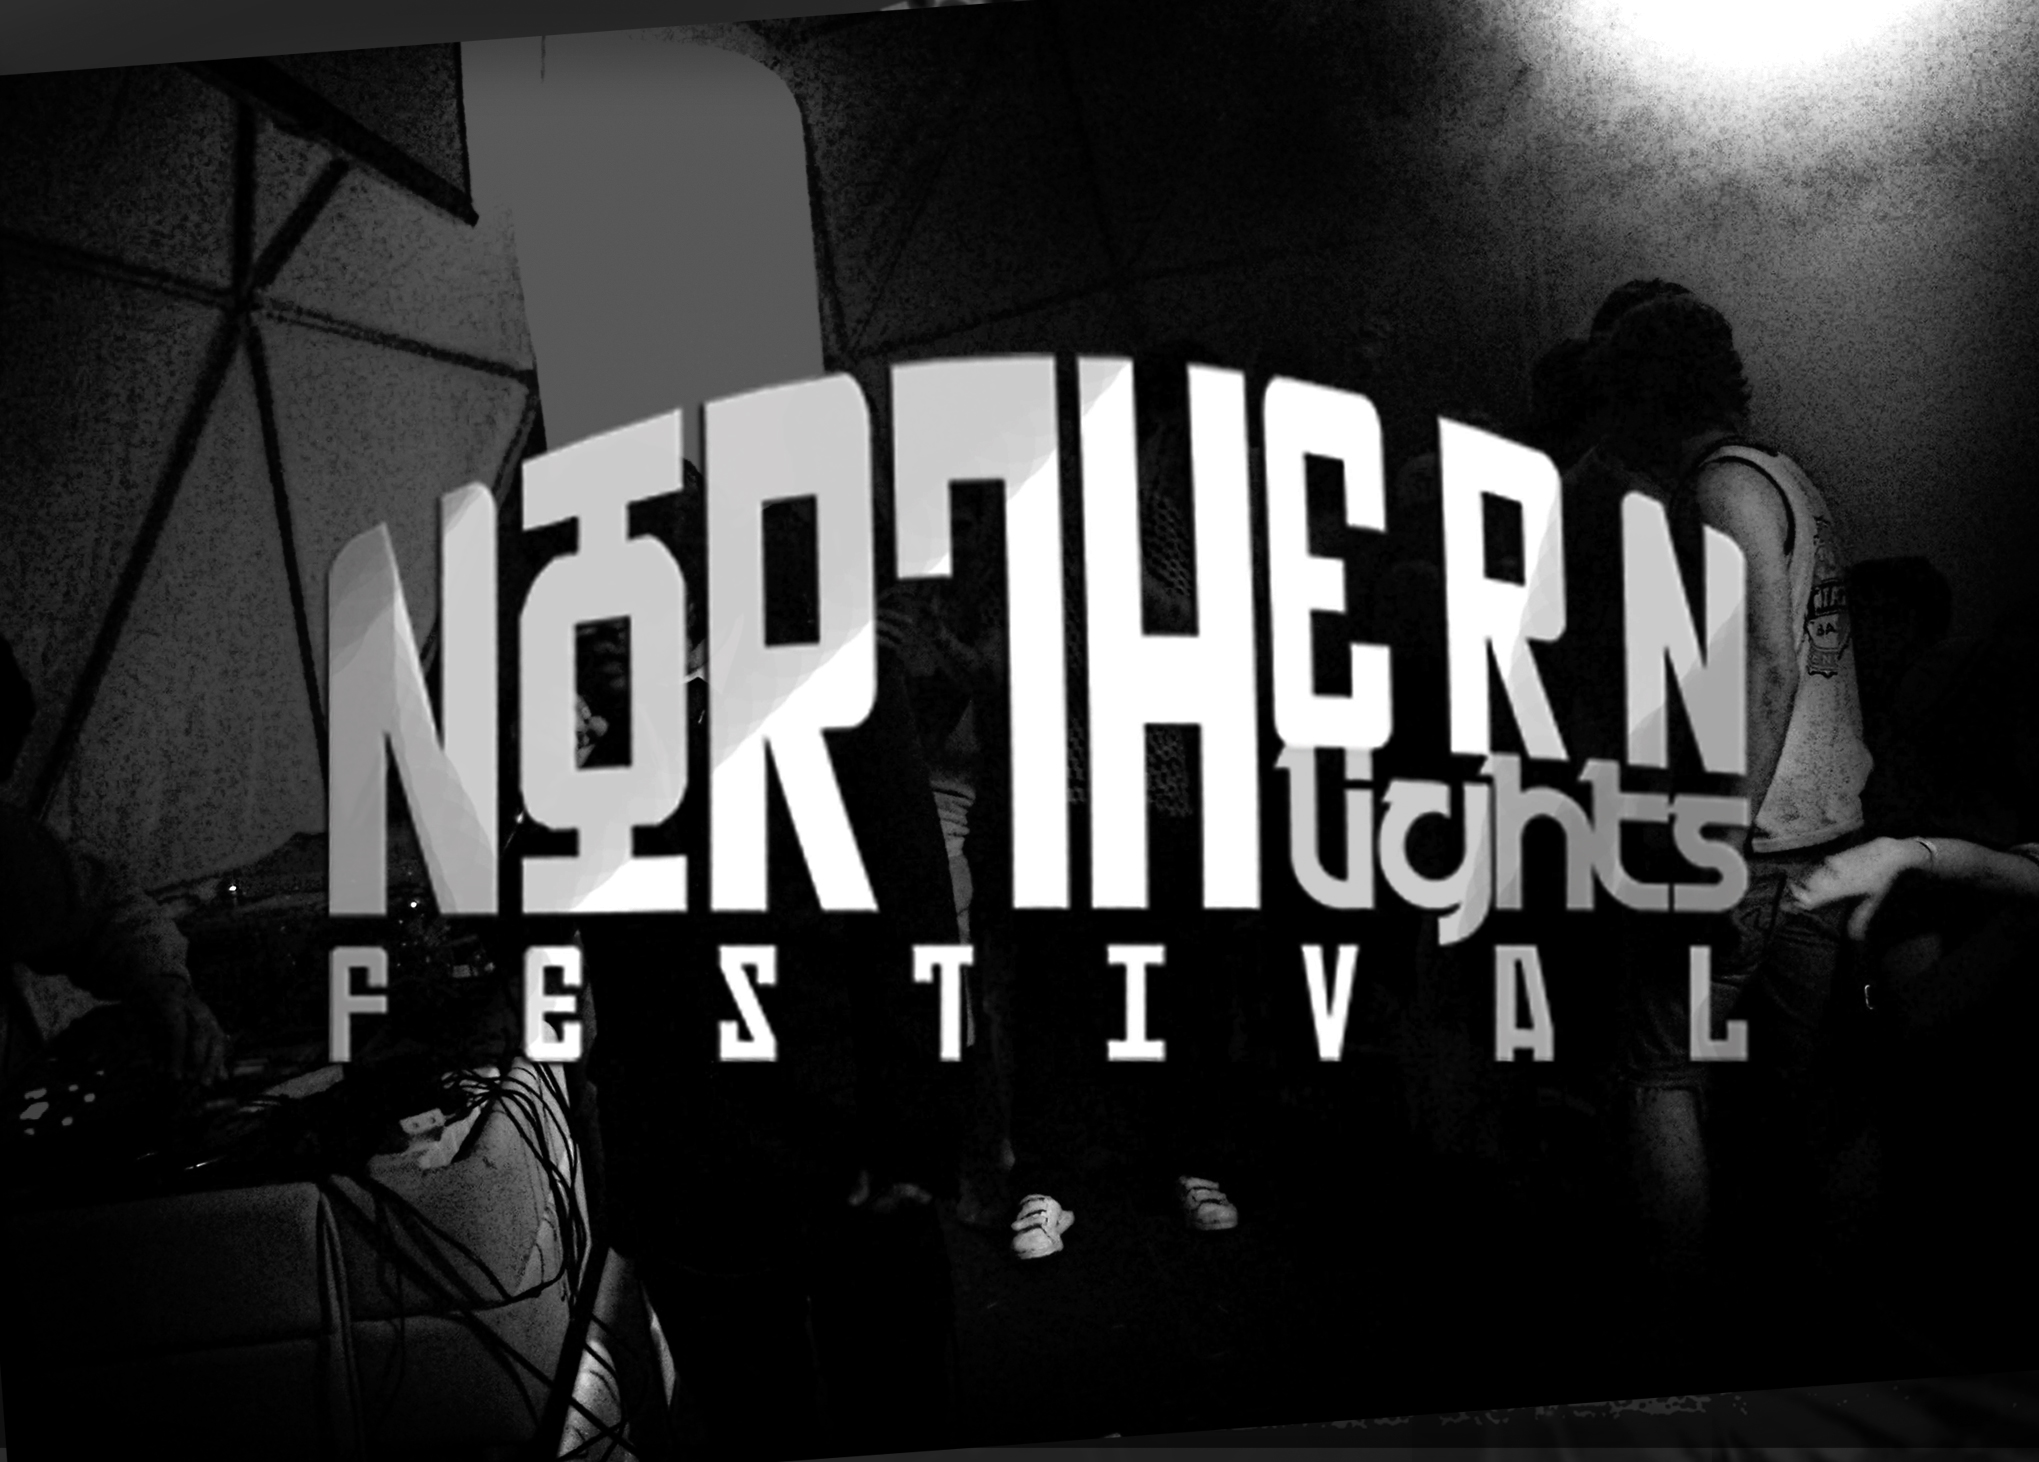 Campaign: NorthernLightsFest.